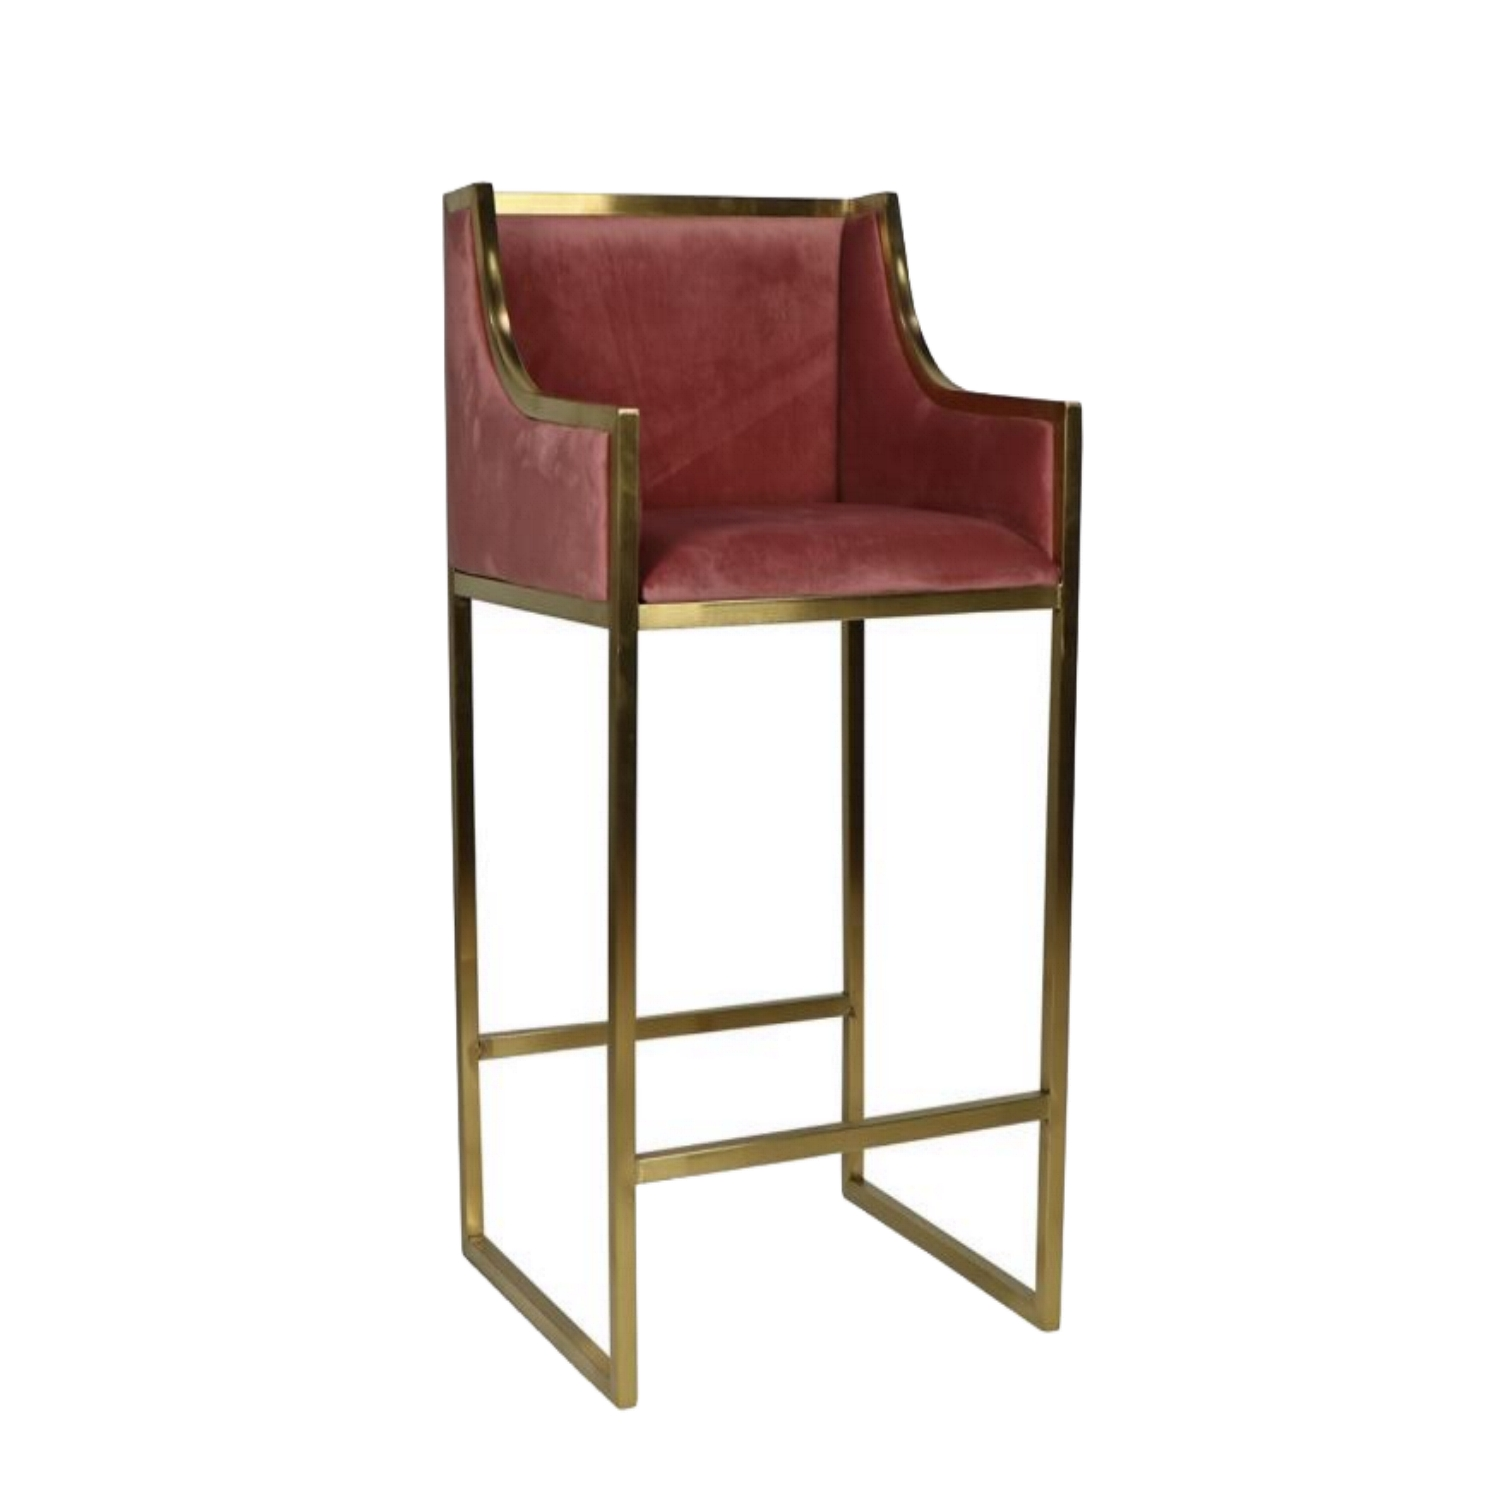 Incredible Red Blush Velvet Bar Stools Sold In Pairs Cushions With Gold Metal Legs Cjindustries Chair Design For Home Cjindustriesco